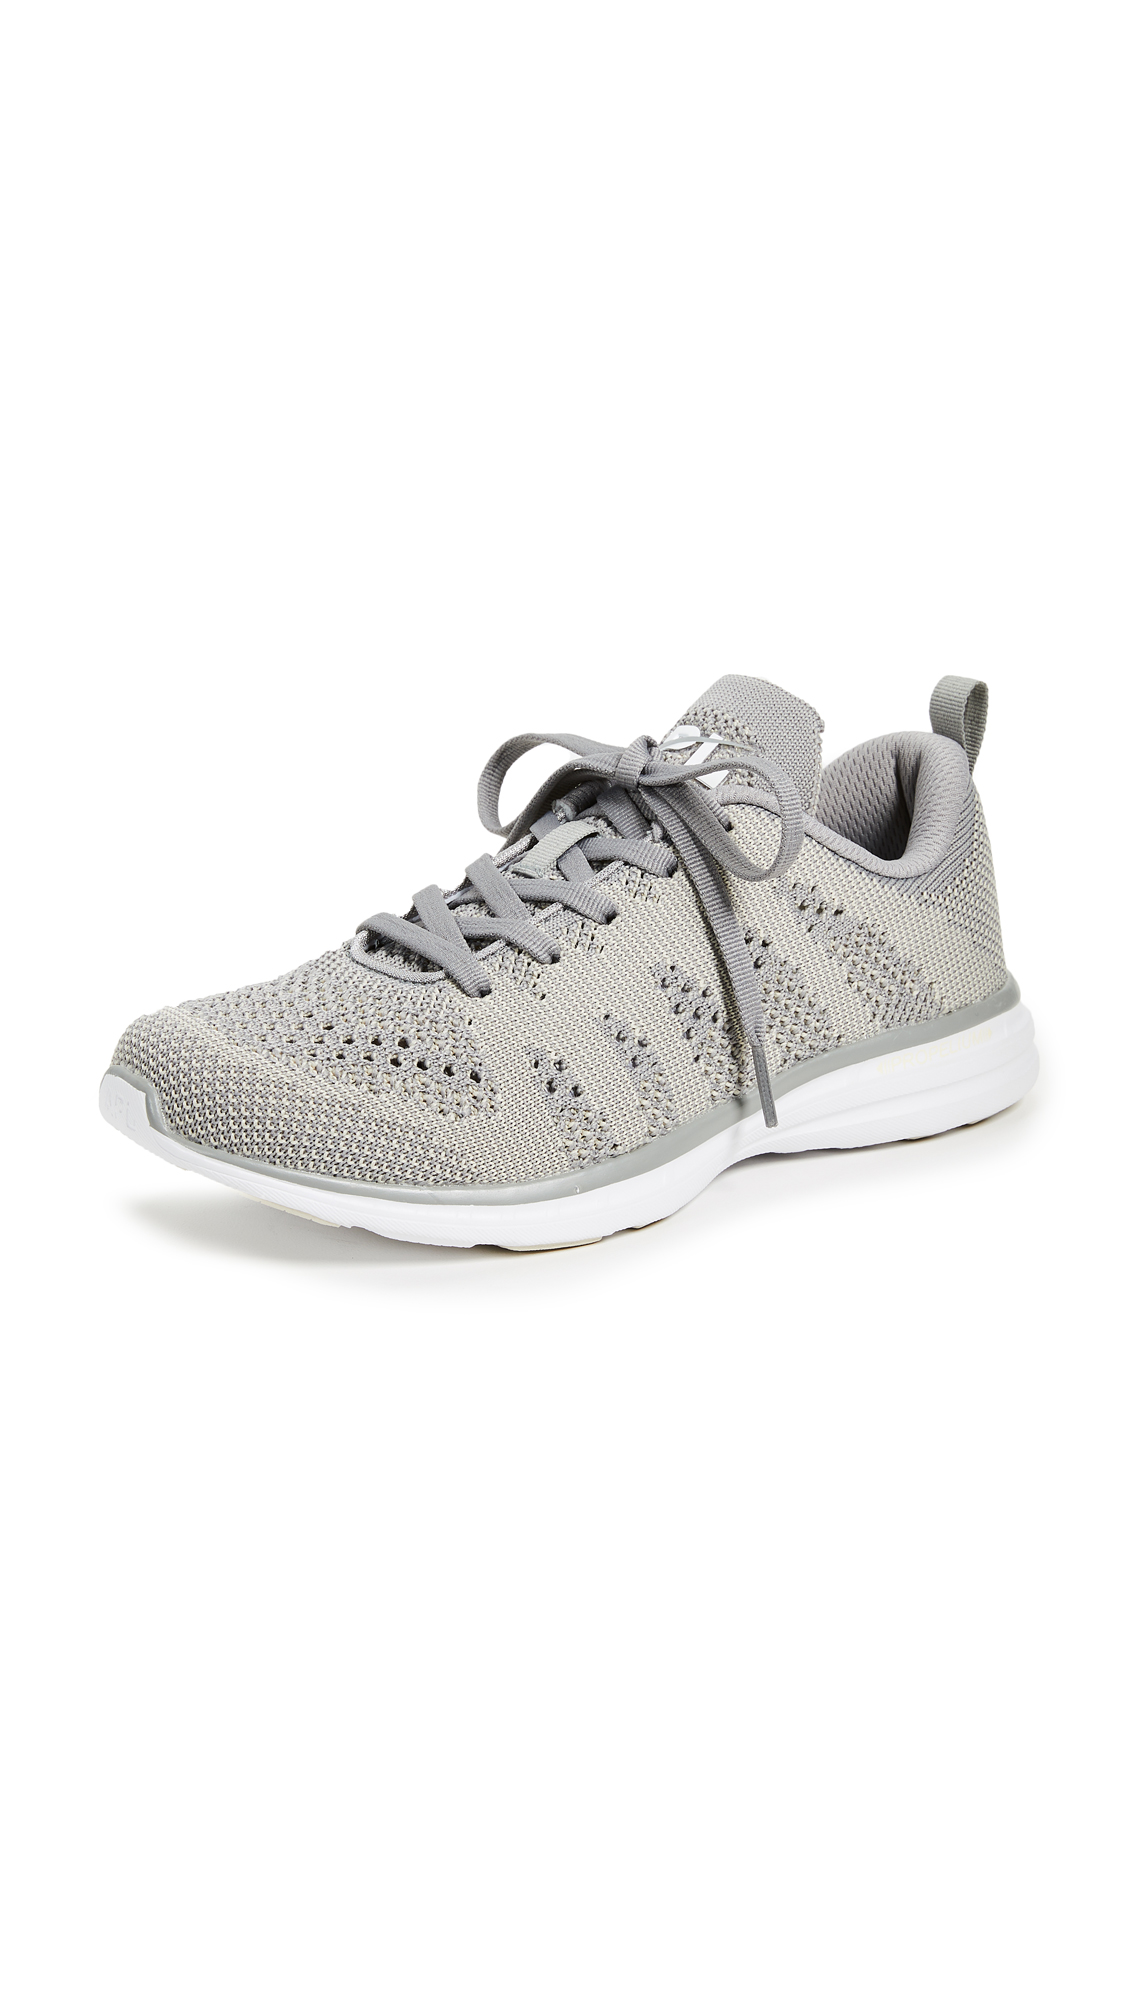 APL: Athletic Propulsion Labs TechLoom Pro Sneakers - Sleet/Parchment/White